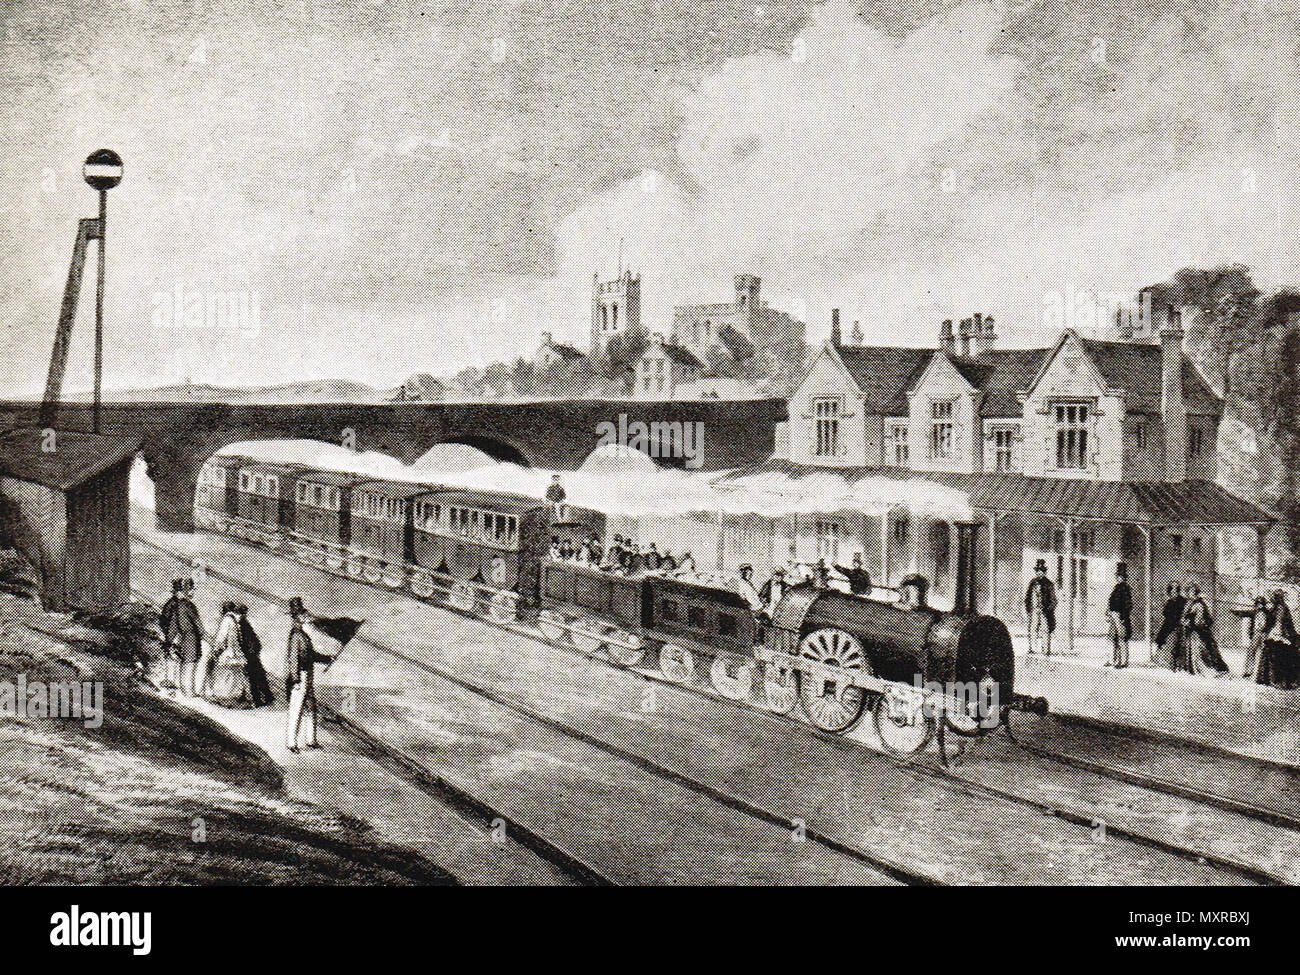 An Early 'Flyer' arriving at a station - Stock Image